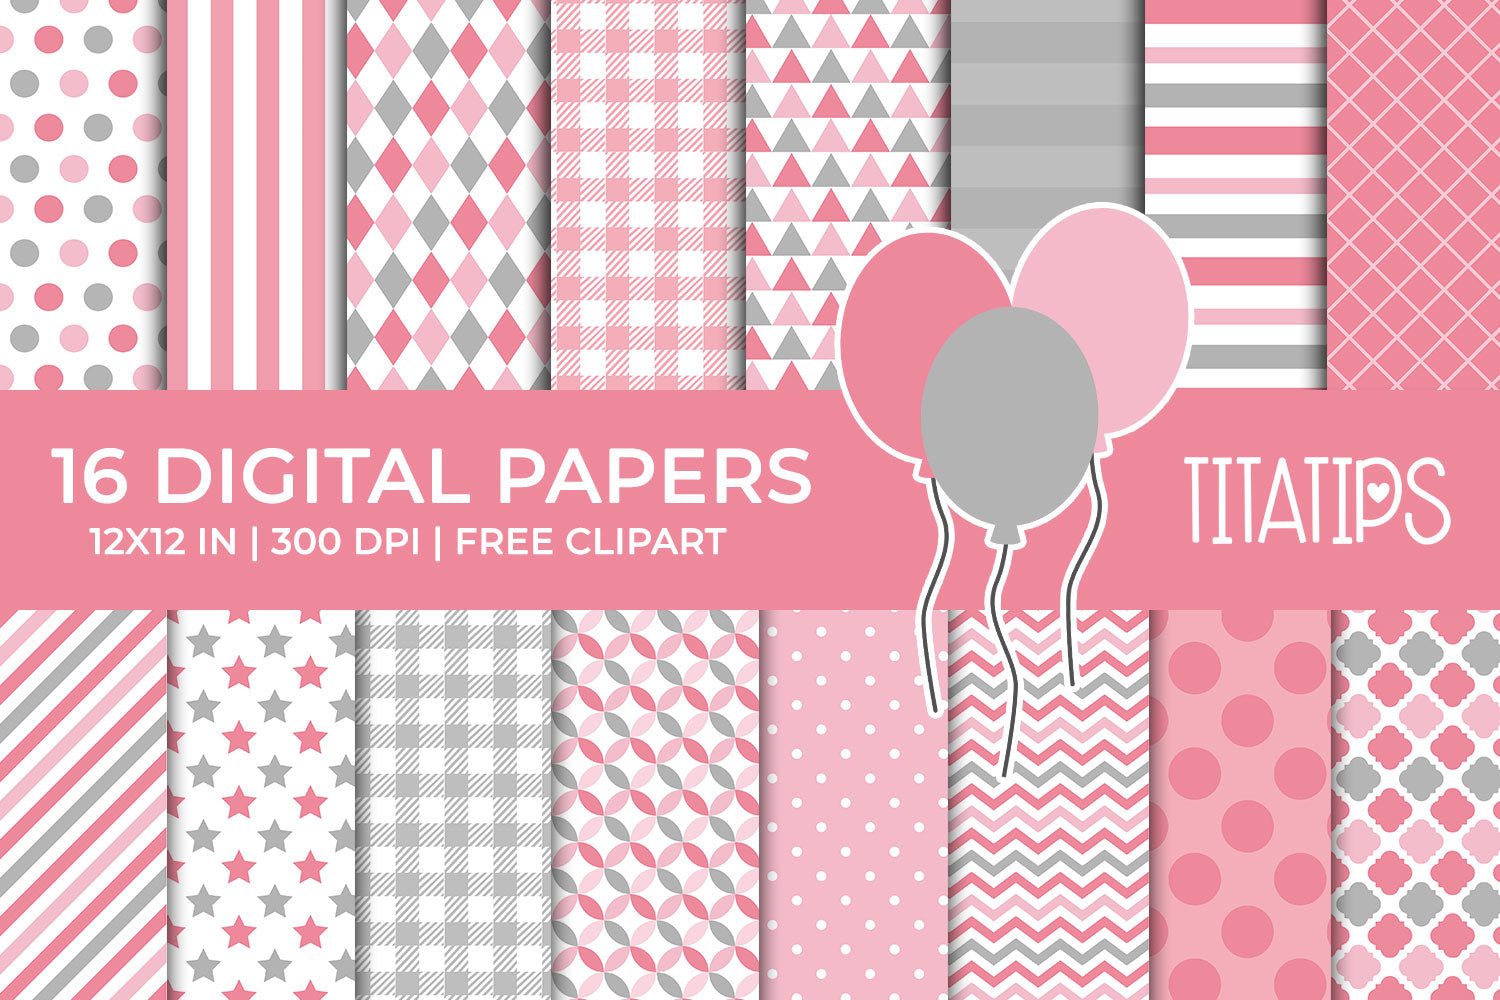 Light Pink and Gray Digital Paper Set, Commercial Use [INSTANT DOWNLOAD] - TitaTipsPrintables